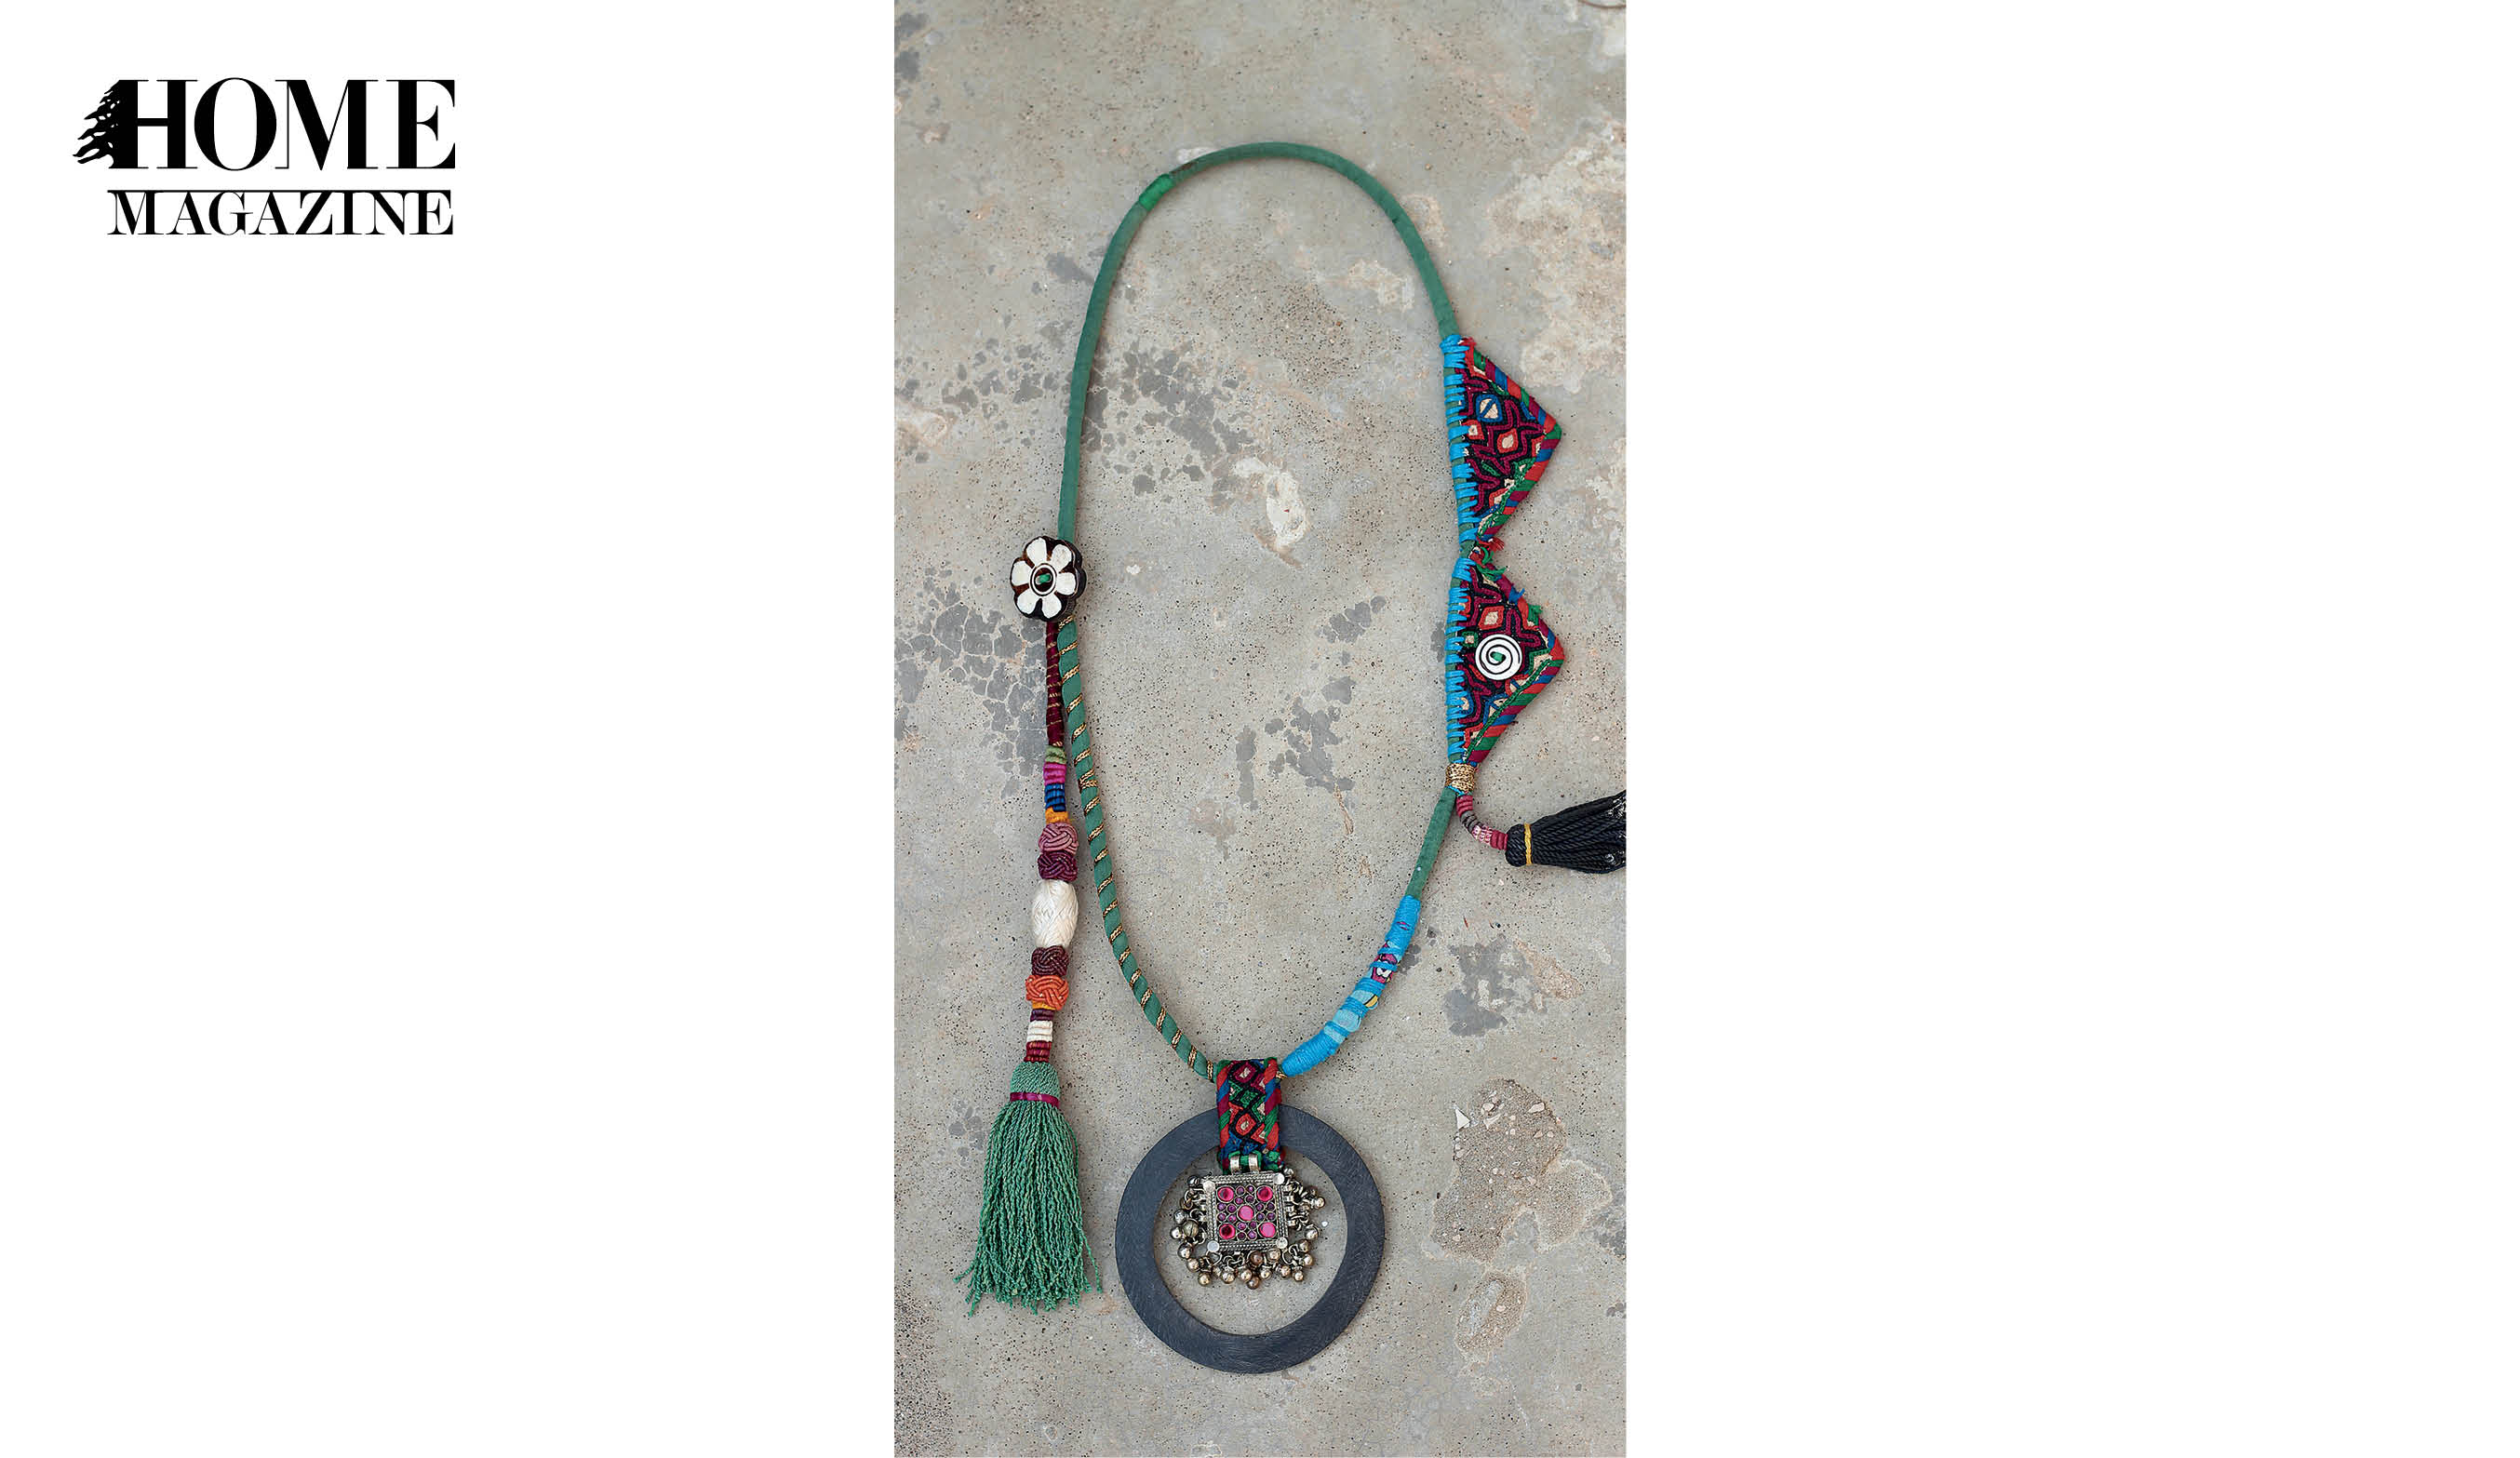 Necklace with round shape and multicolored textile